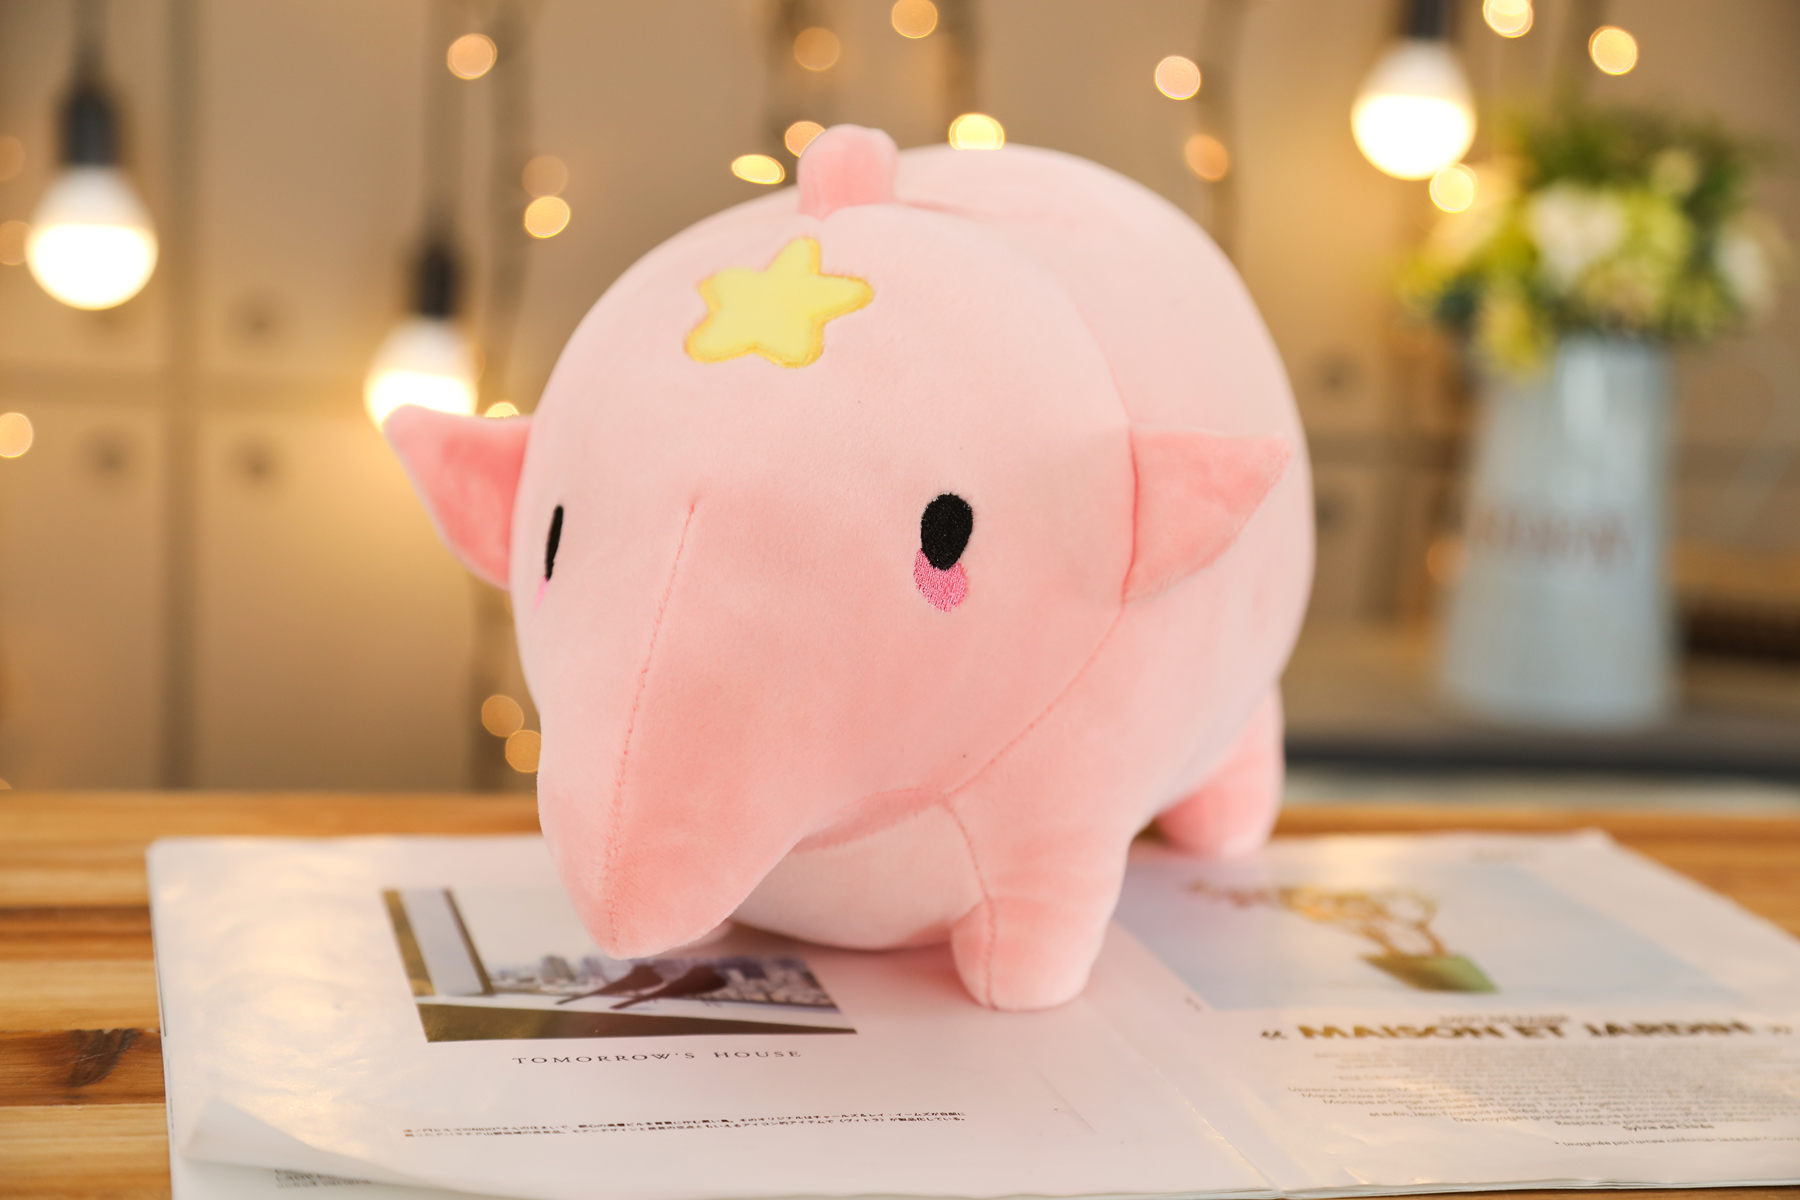 1pc 40-80cm Soft Lovely Rhinoceros Plush Pillow Kawaii Stuffed Animal Plush Toys for Children Baby Appease Doll Kids Girls Gift  - buy with discount